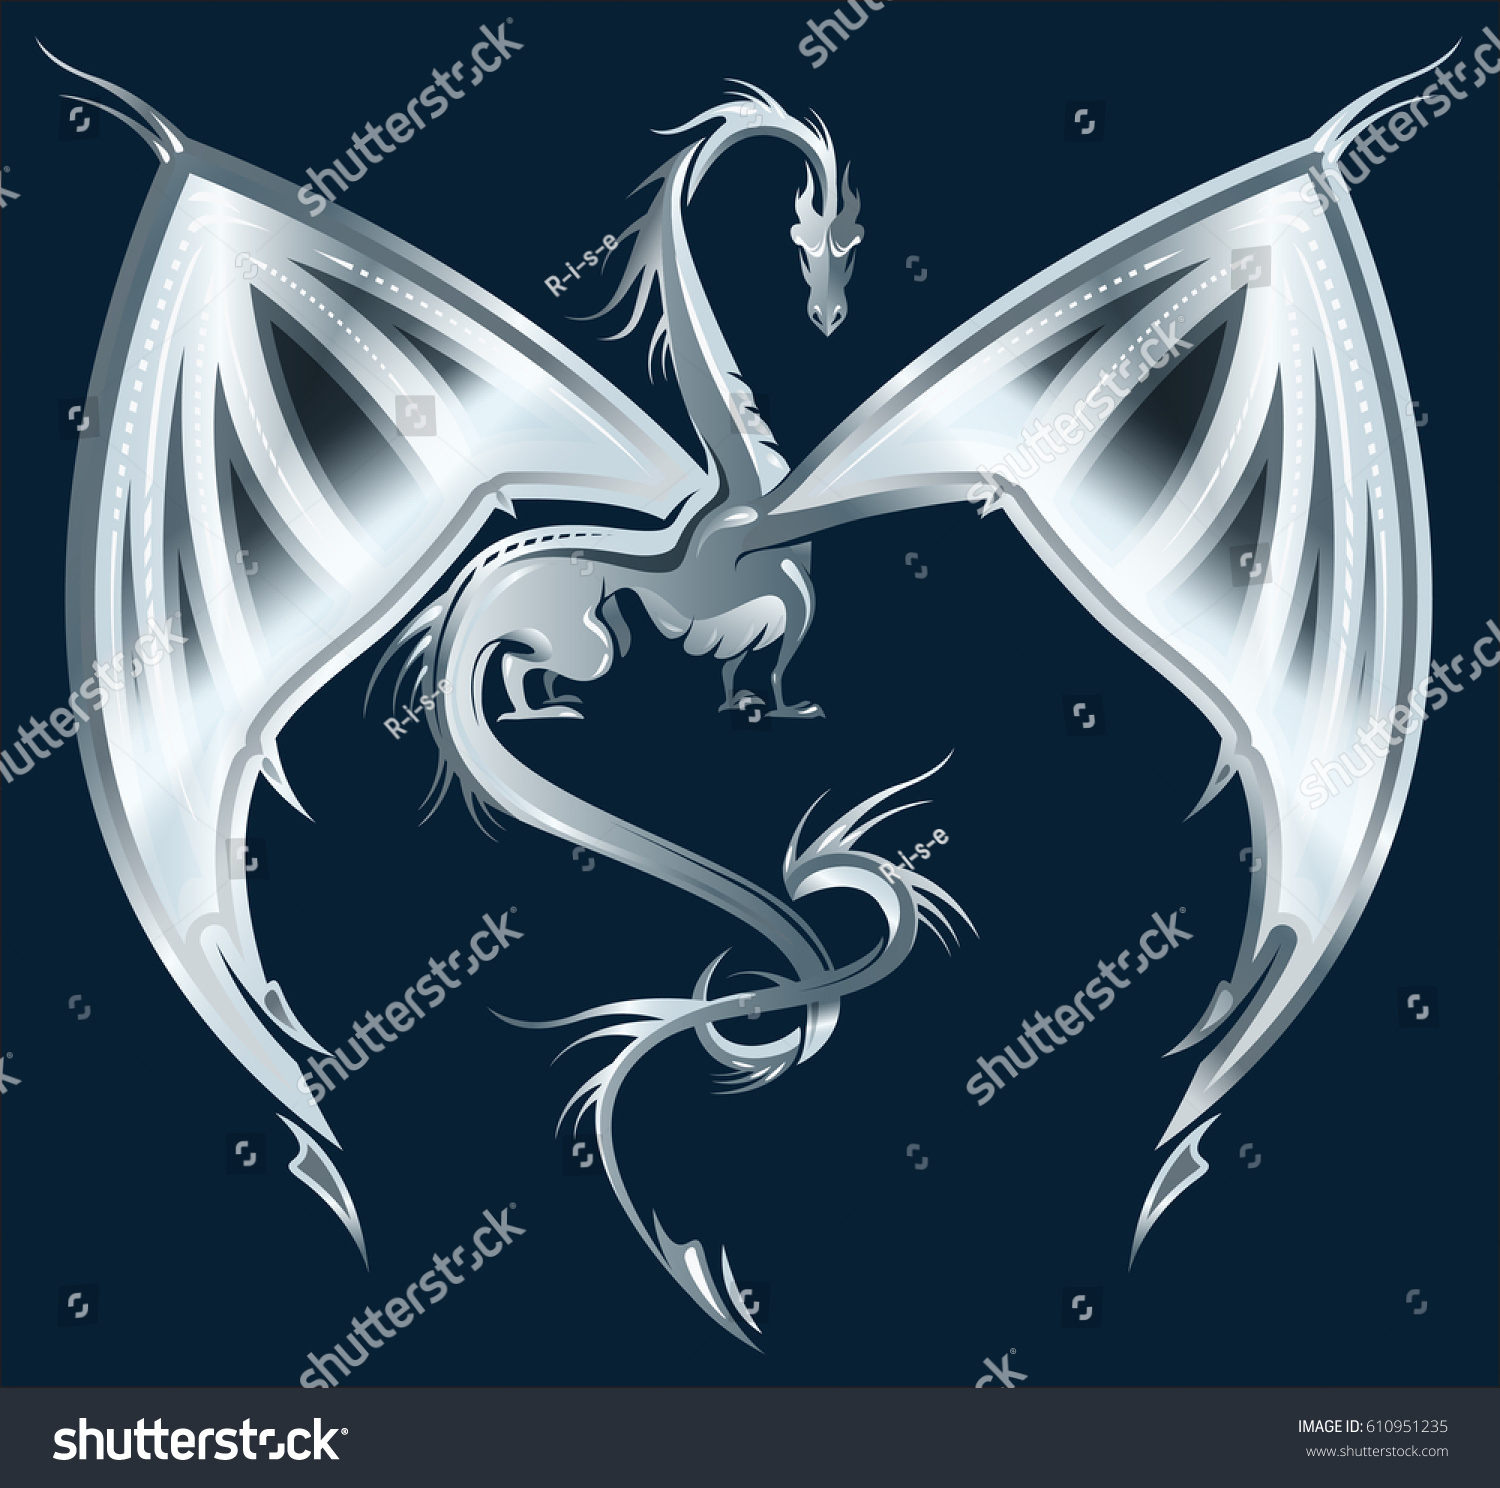 stylized image silver dragon on dark stock vector royalty free